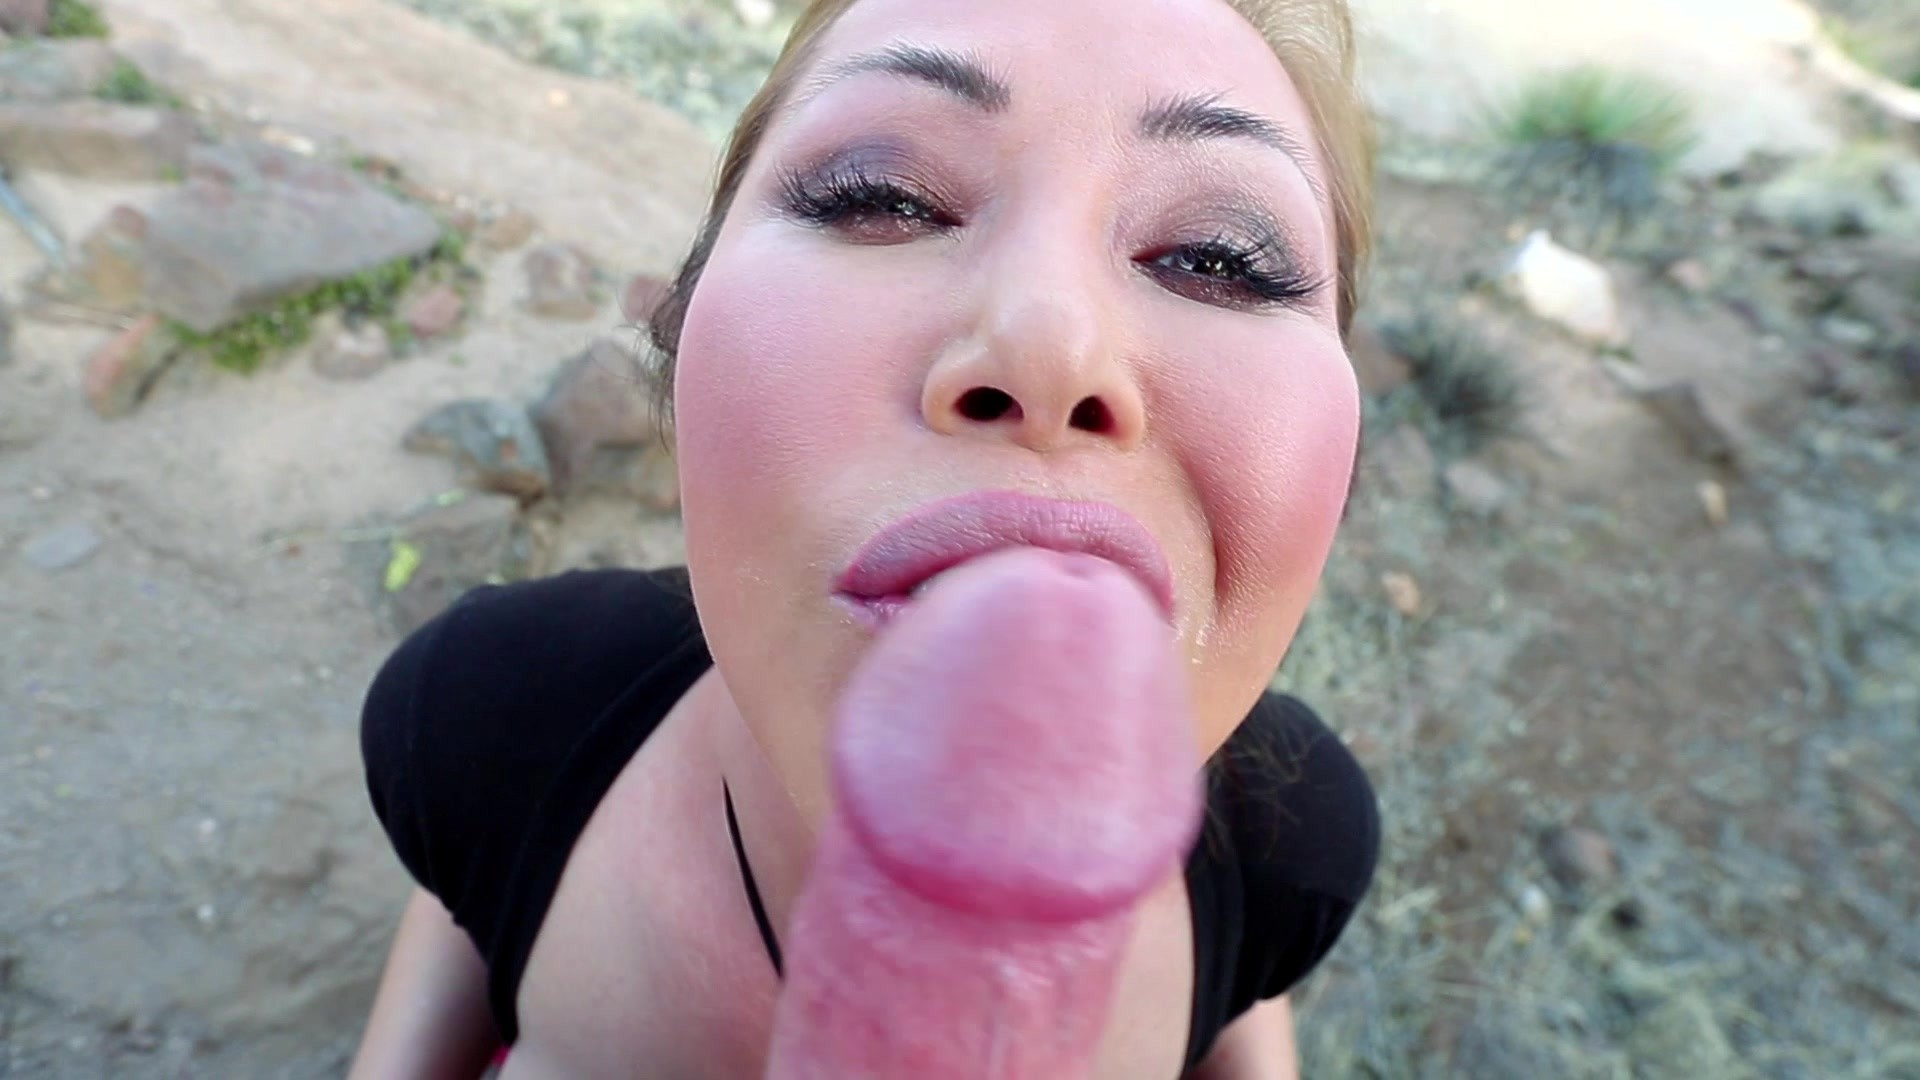 apologise, but, opinion, erotic asian suck cock and facial theme simply matchless